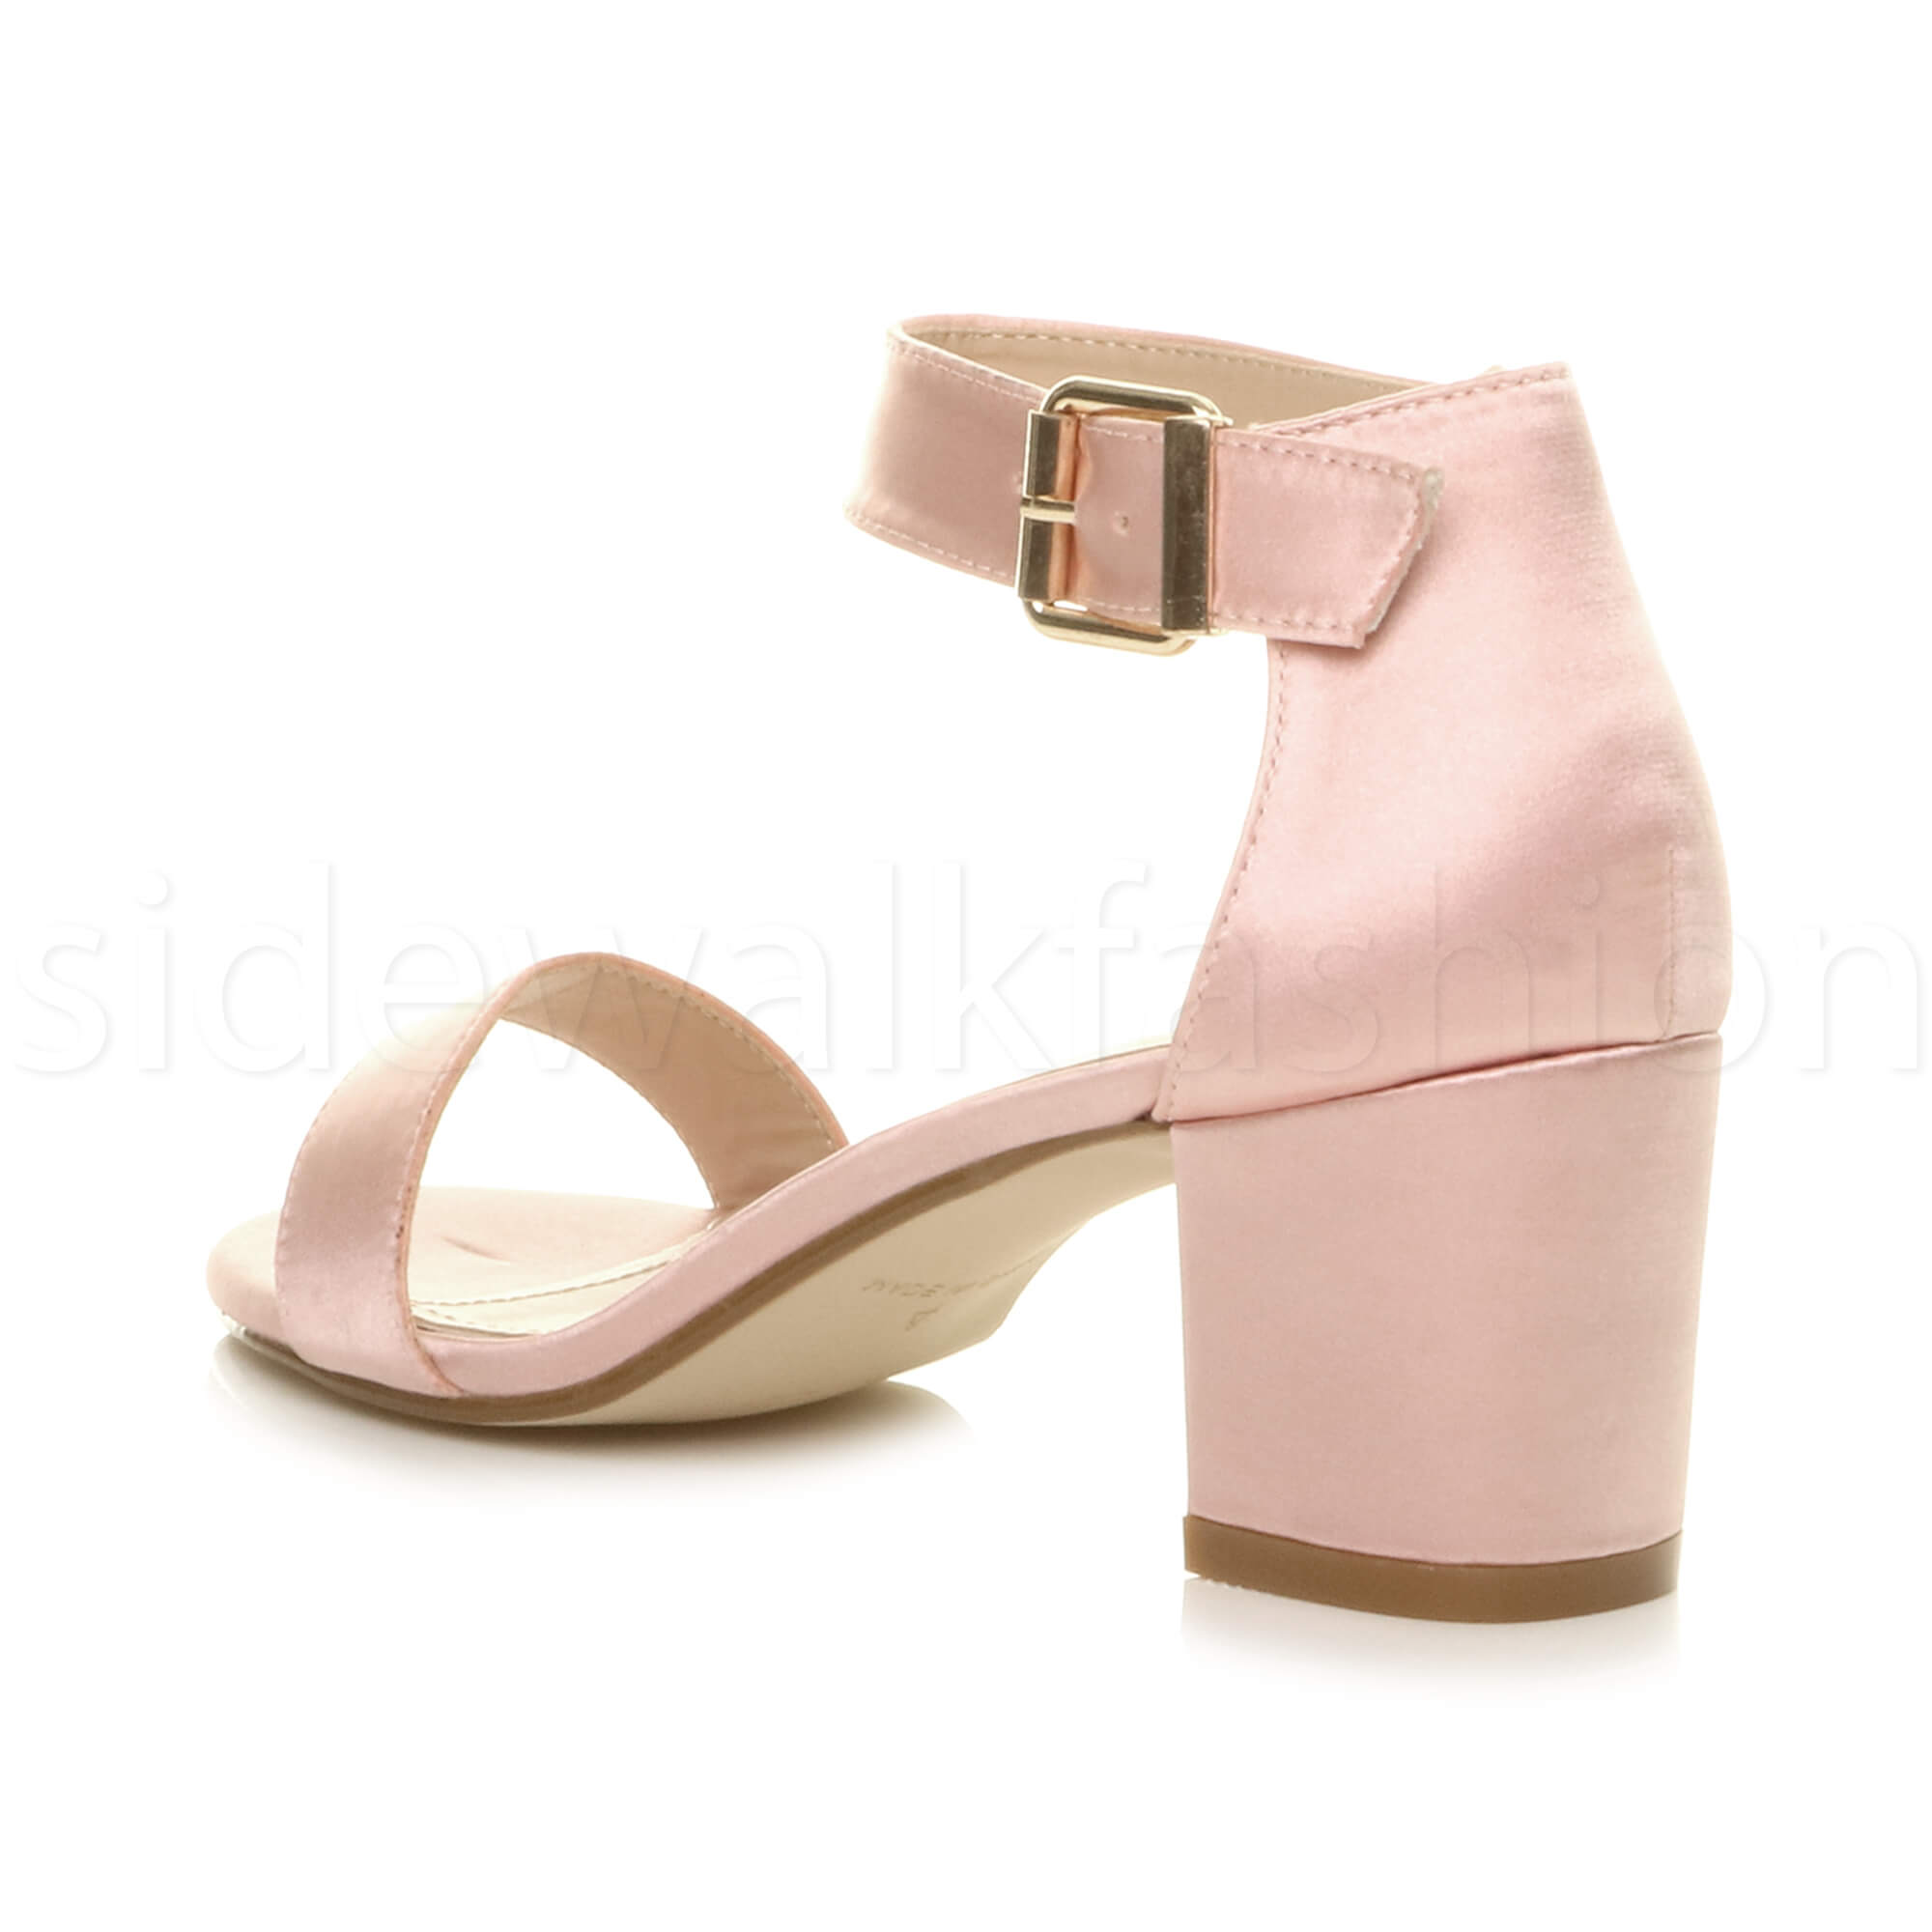 Womens-ladies-low-mid-heel-buckle-ankle-strap-peep-toe-party-strappy-sandal-size thumbnail 5